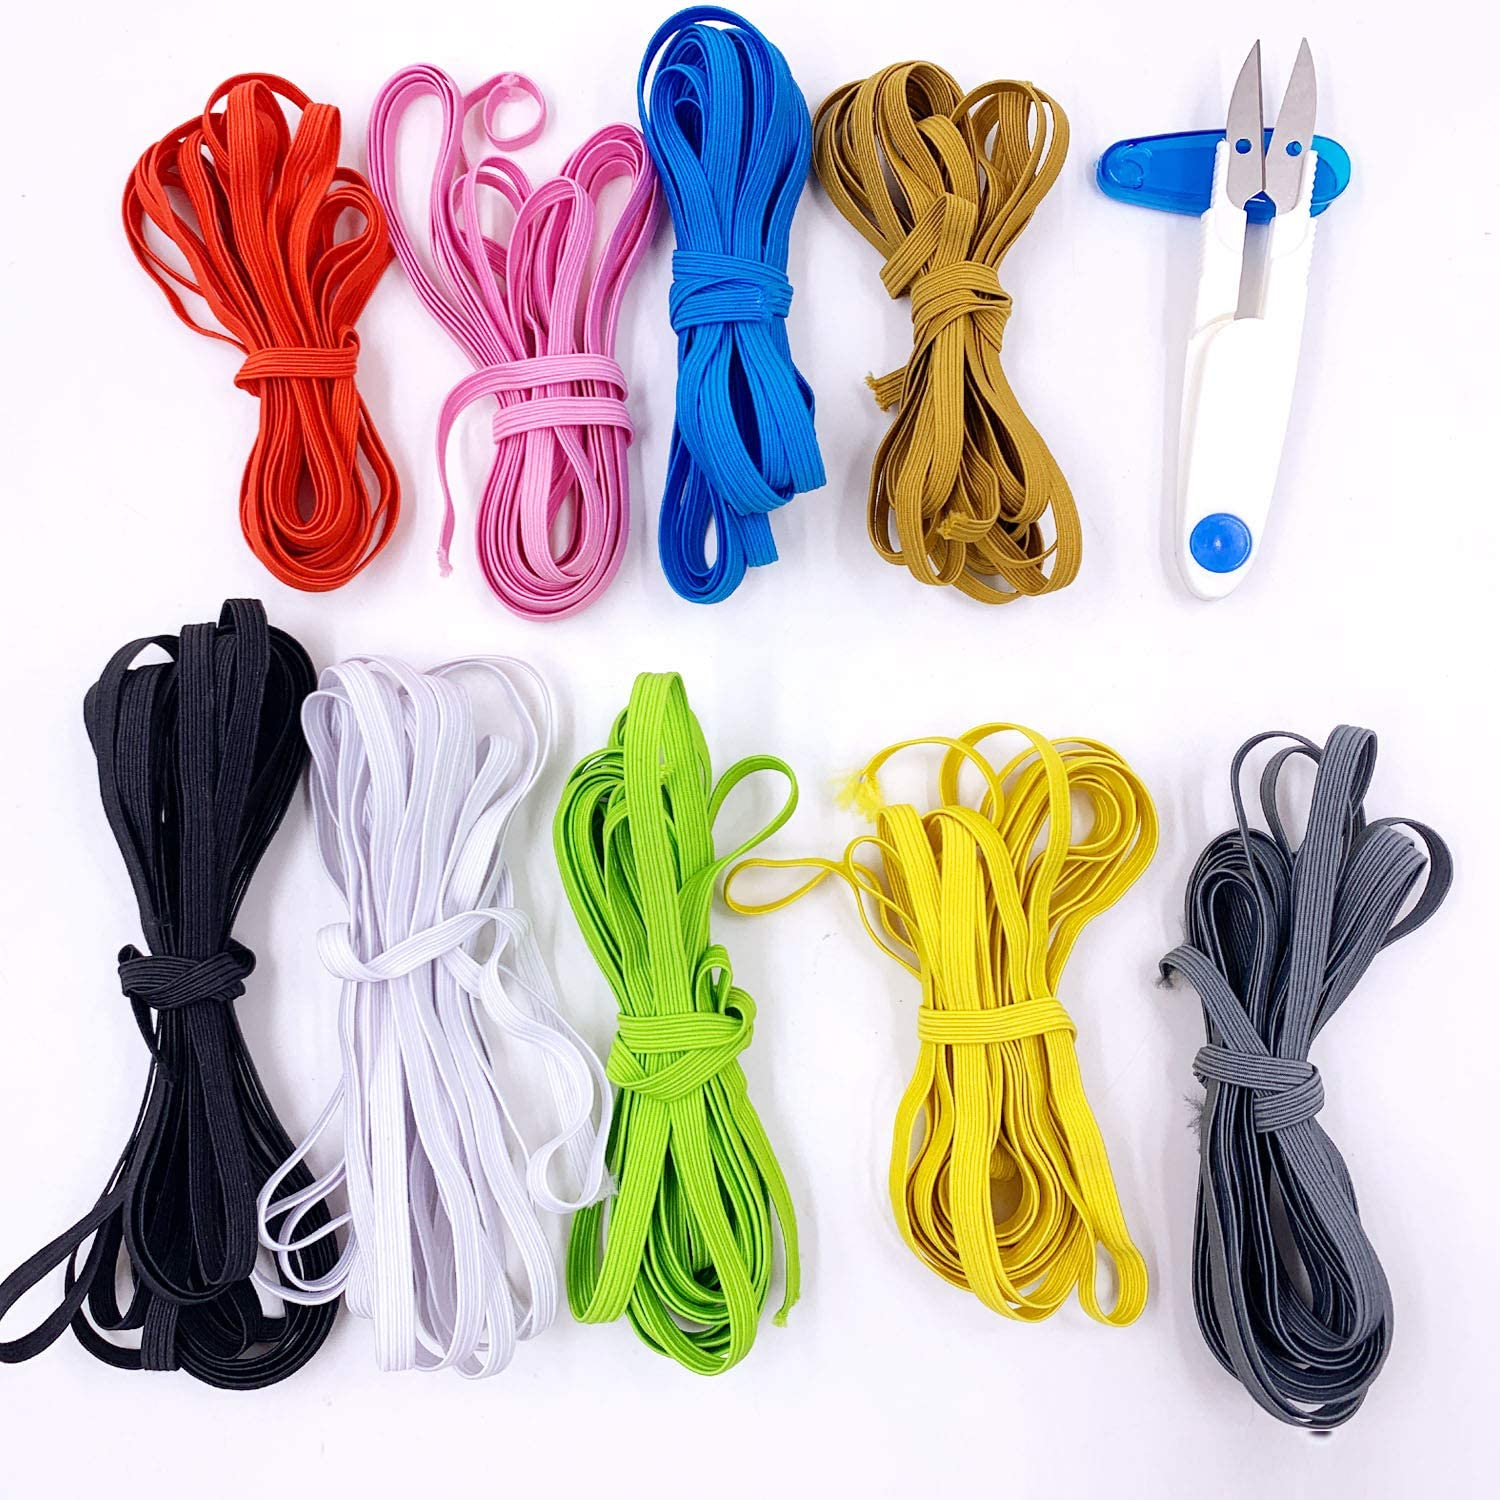 Elastic Band Sewing Coloured Elastic for Sewing 5mm Braided Elastic Band Earloop Rope Cord High Elasticity for Sewing Crafts DIY Clothes